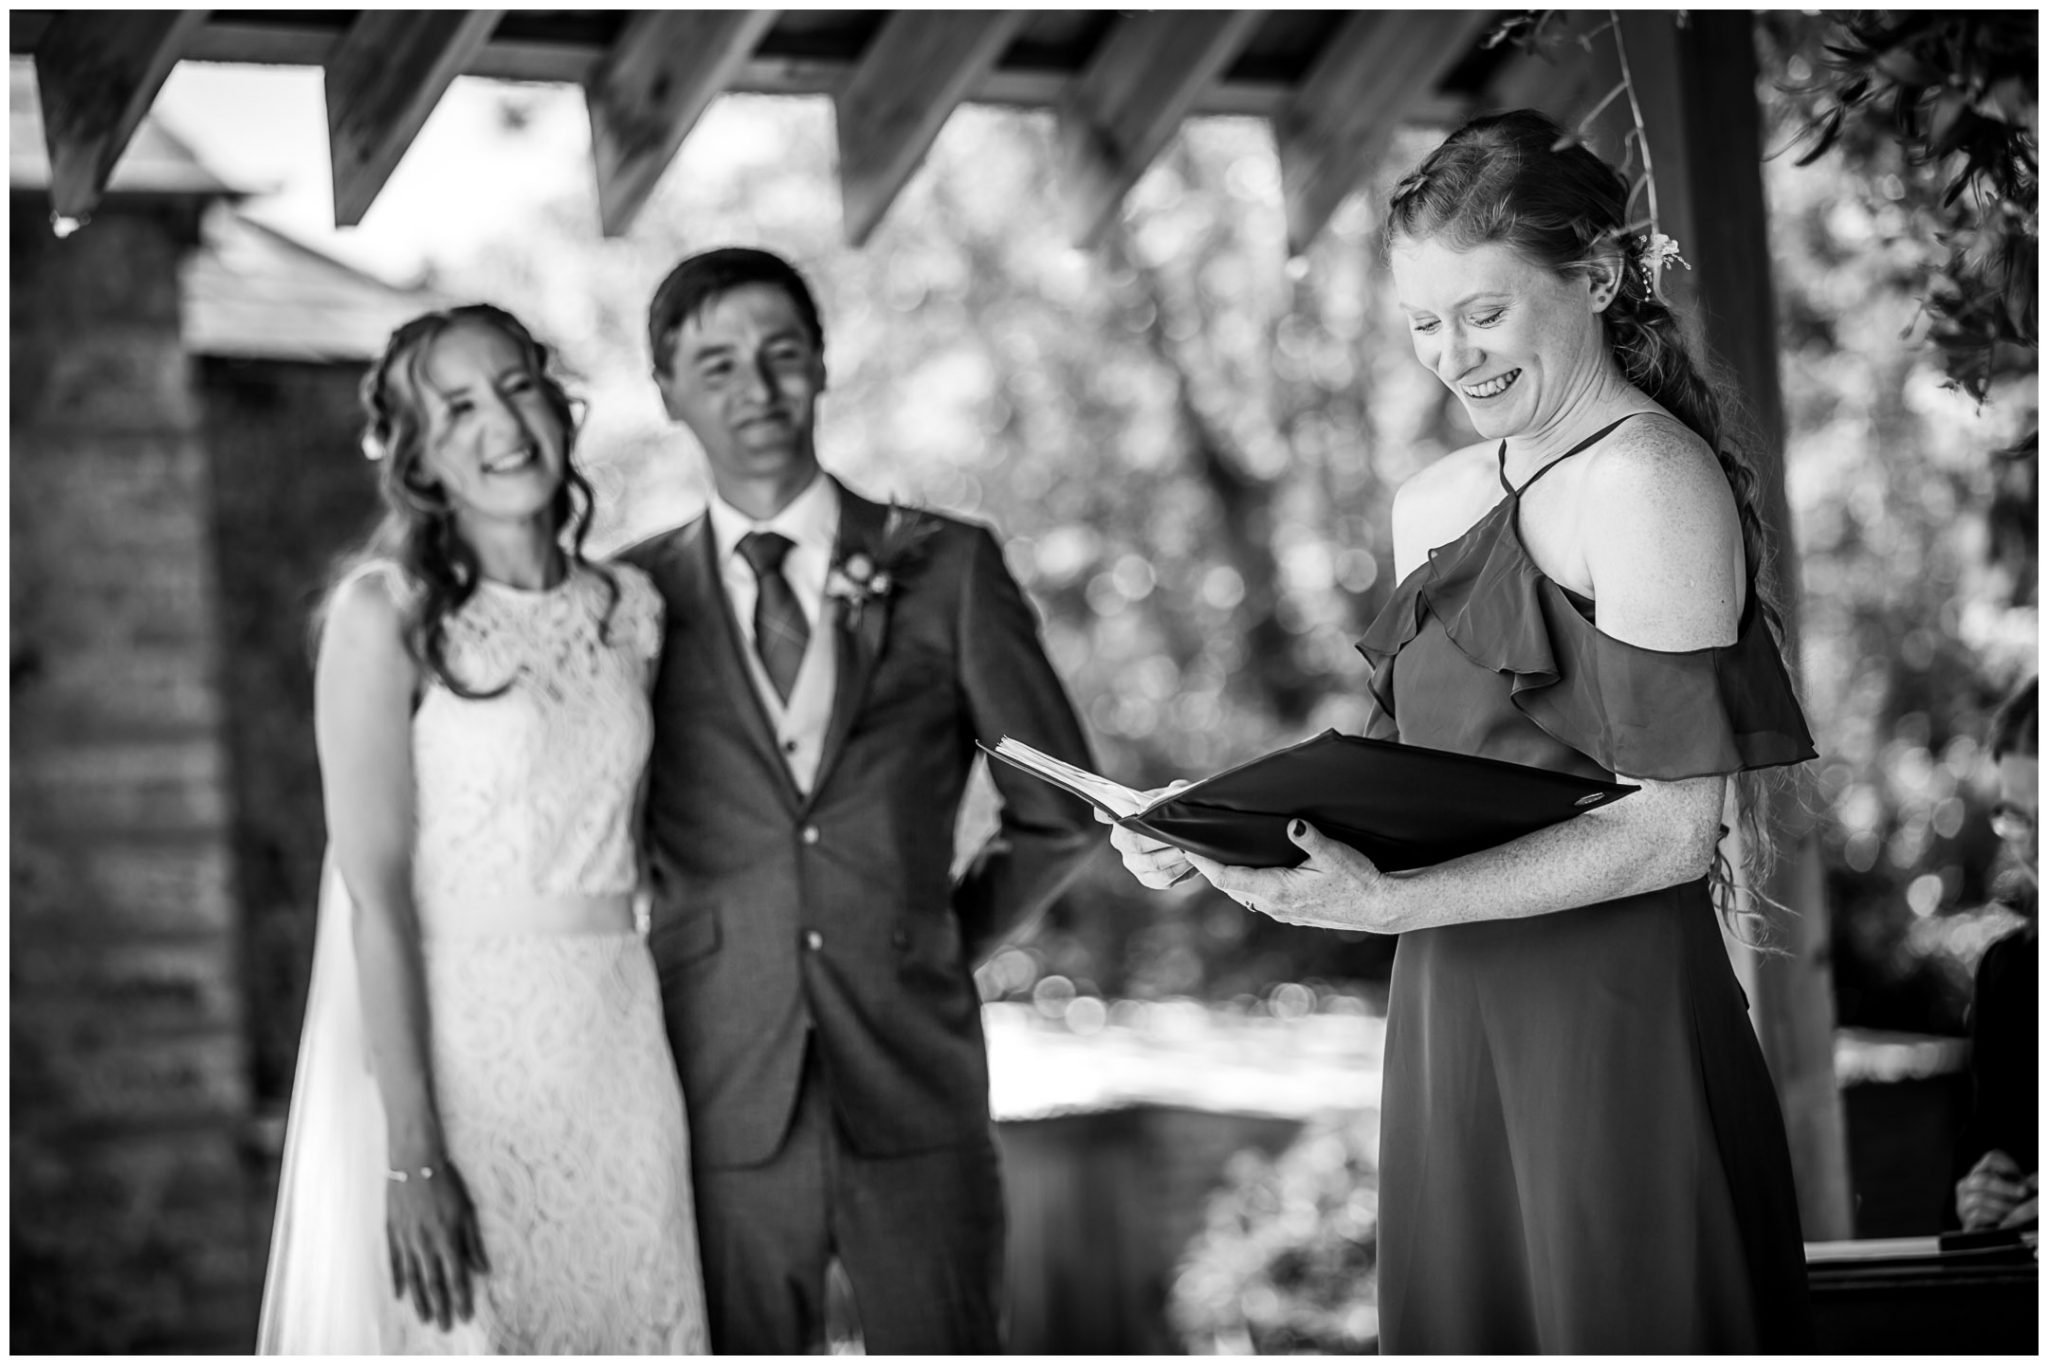 A bridesmaid gives a reading at the conclusion of the marriage